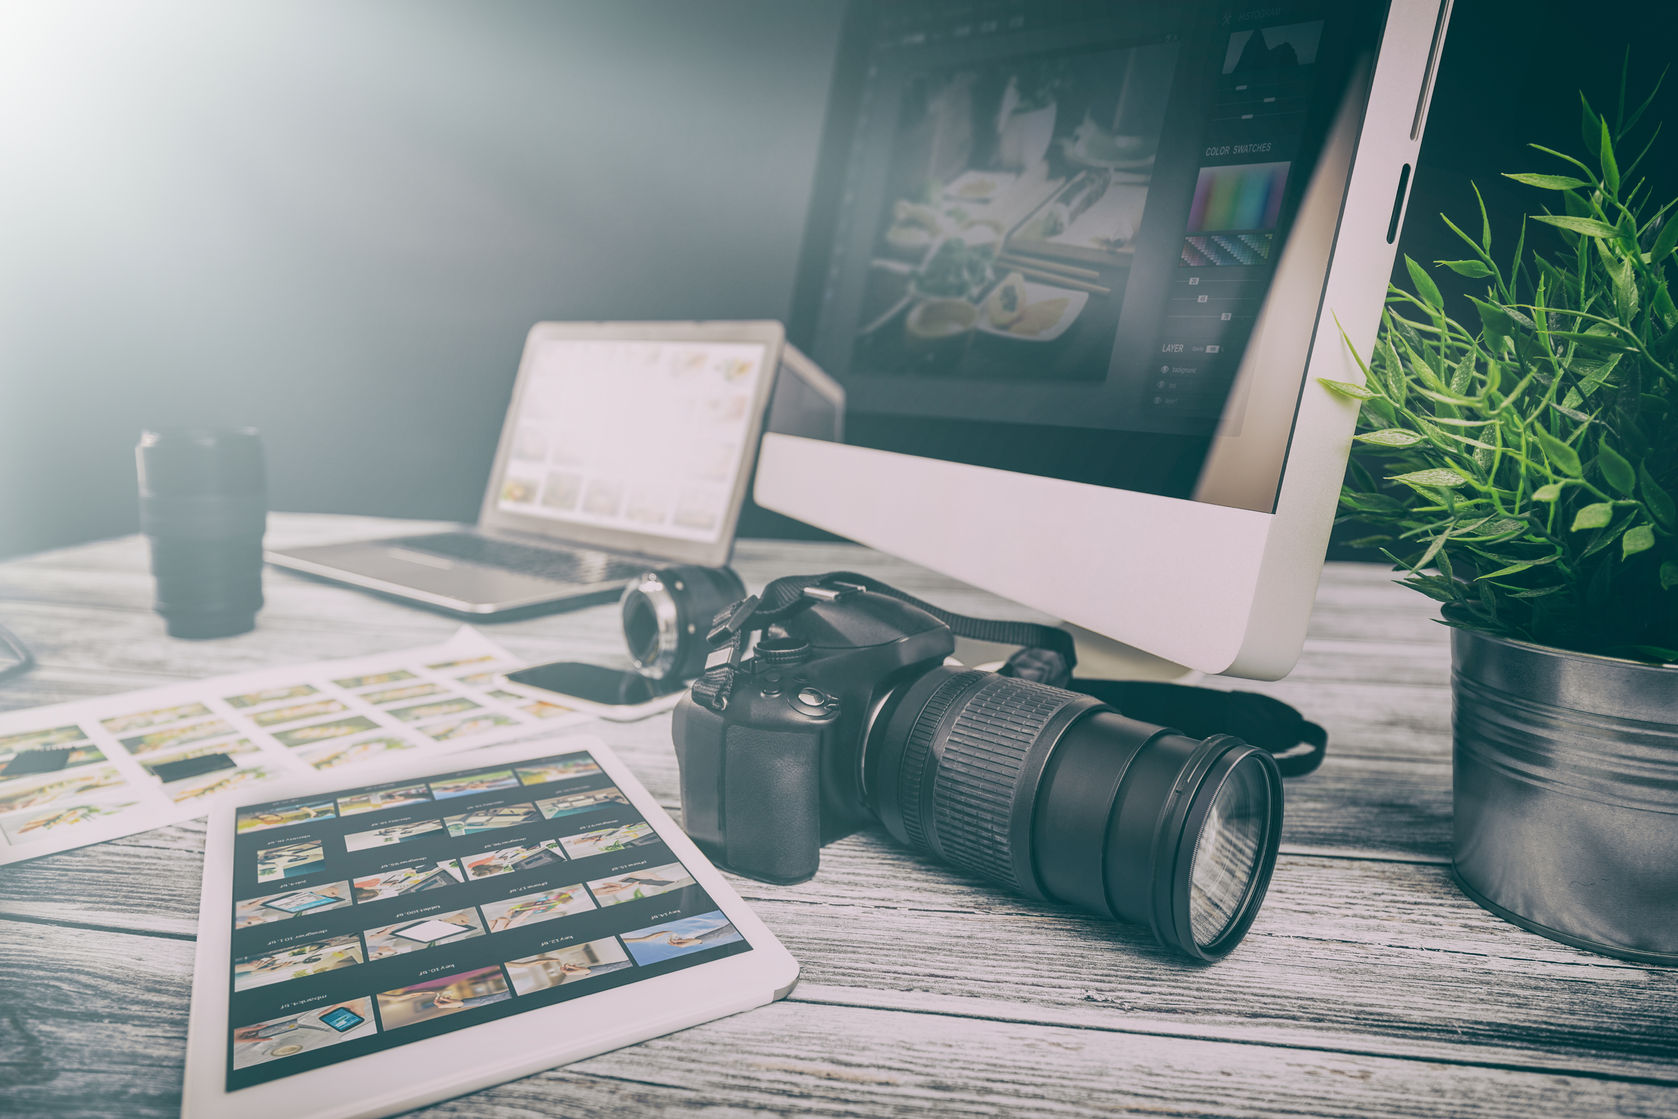 Nik collection isn t dead after all with acquisition by dxo - 123rf image gratuite ...